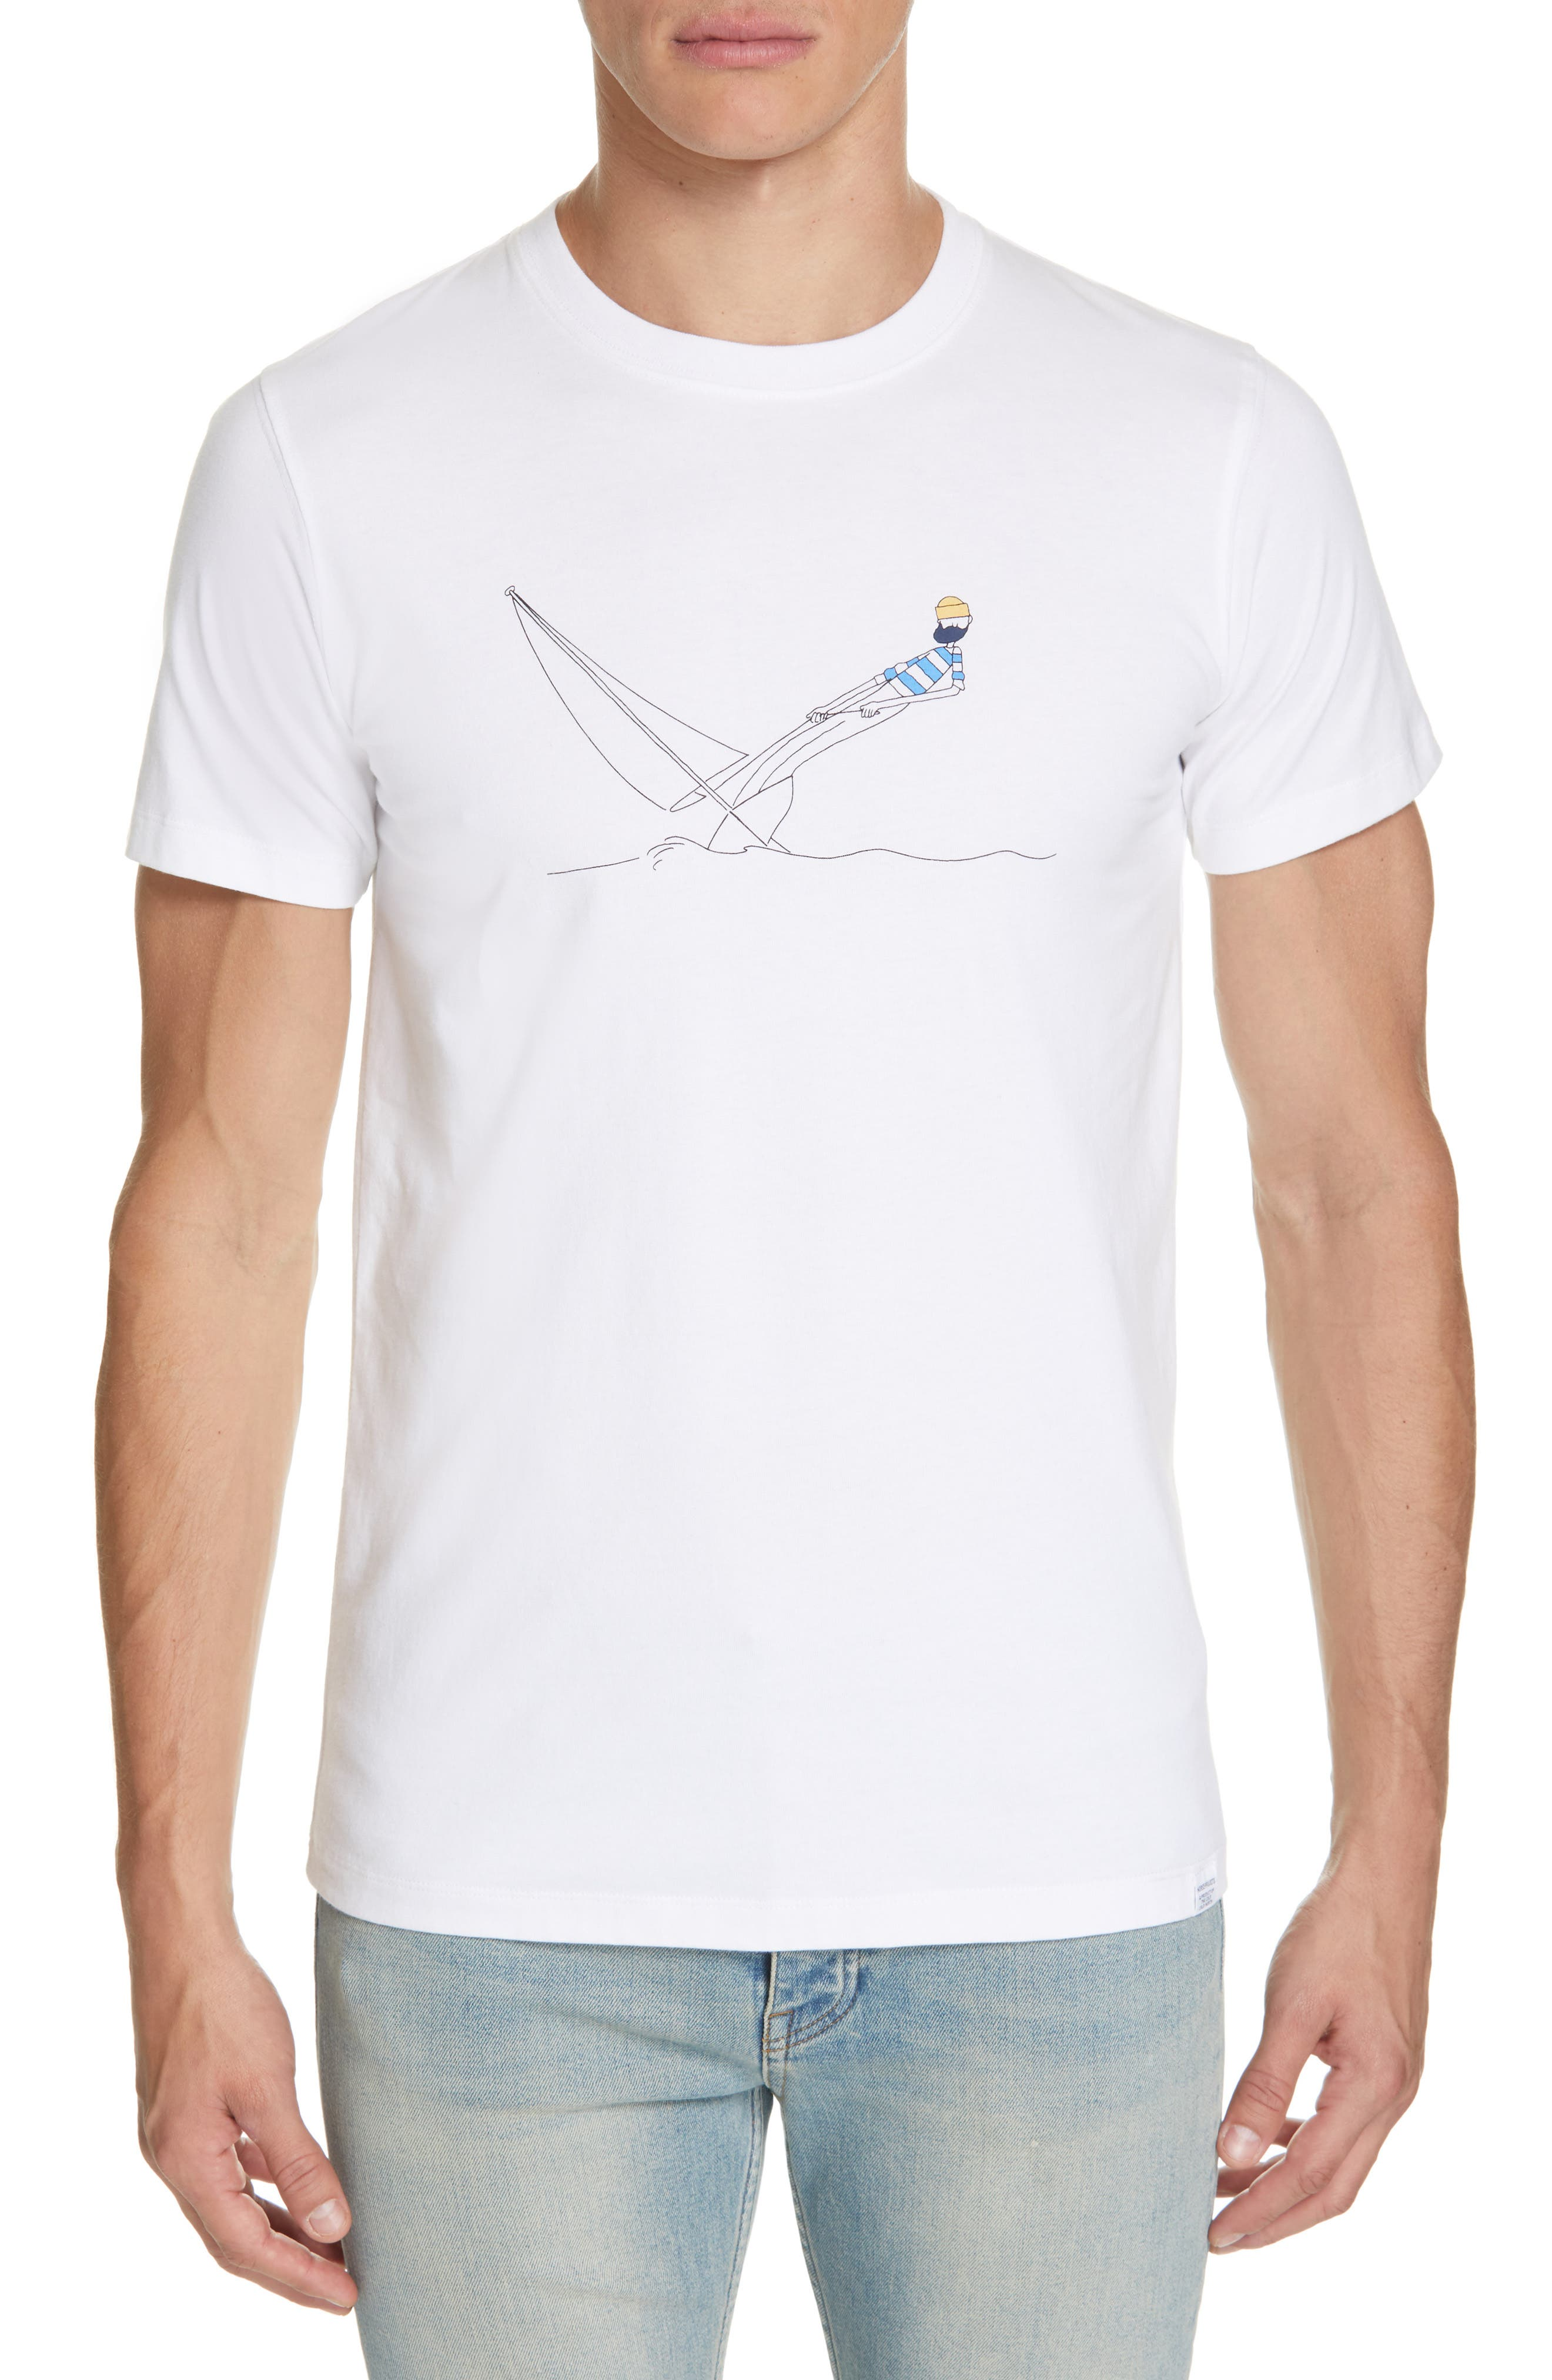 Daniel Frost - Hanging Graphic T-Shirt,                             Main thumbnail 1, color,                             WHITE